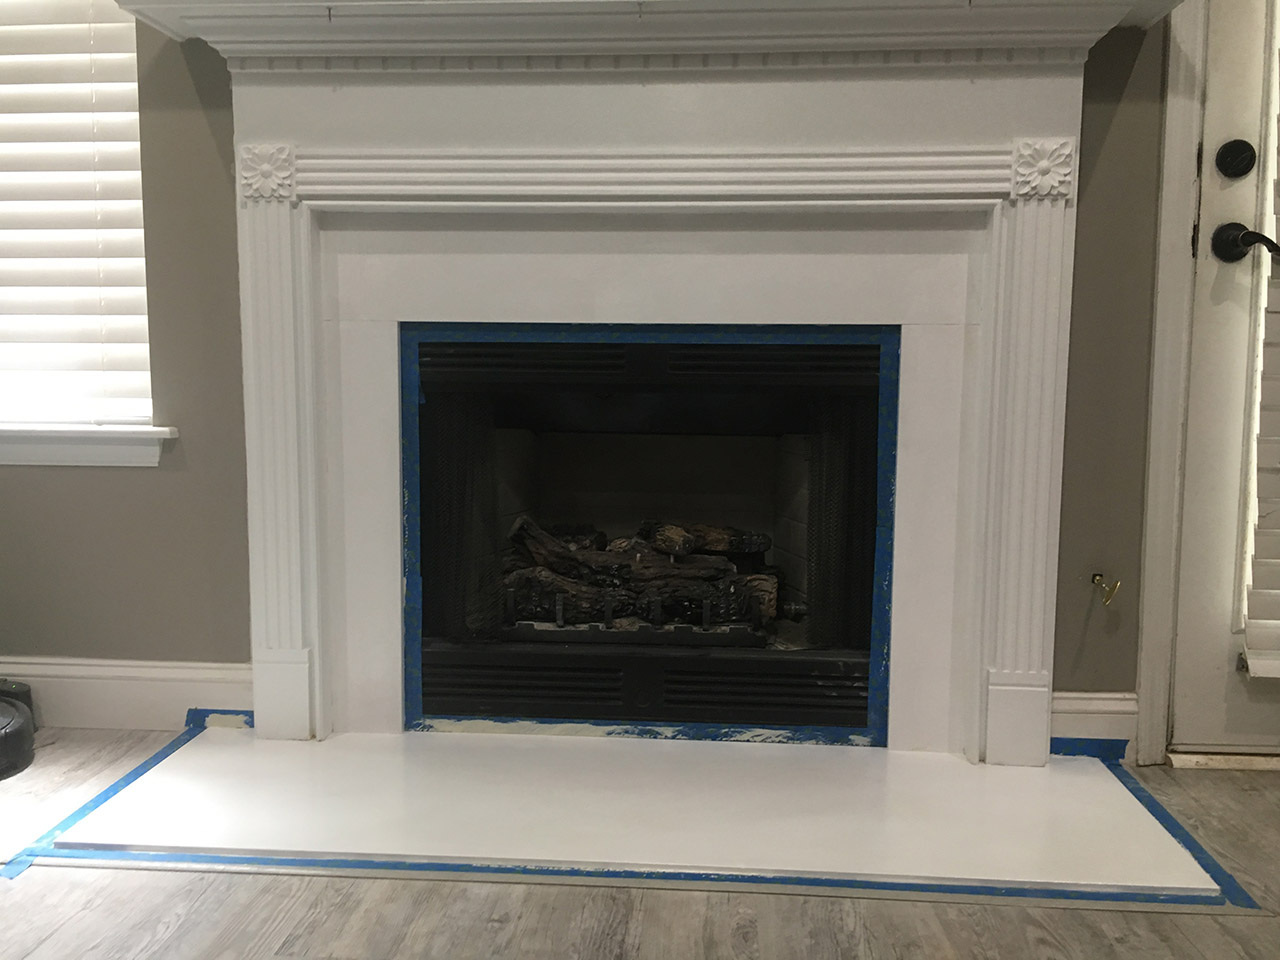 Priming the mantle